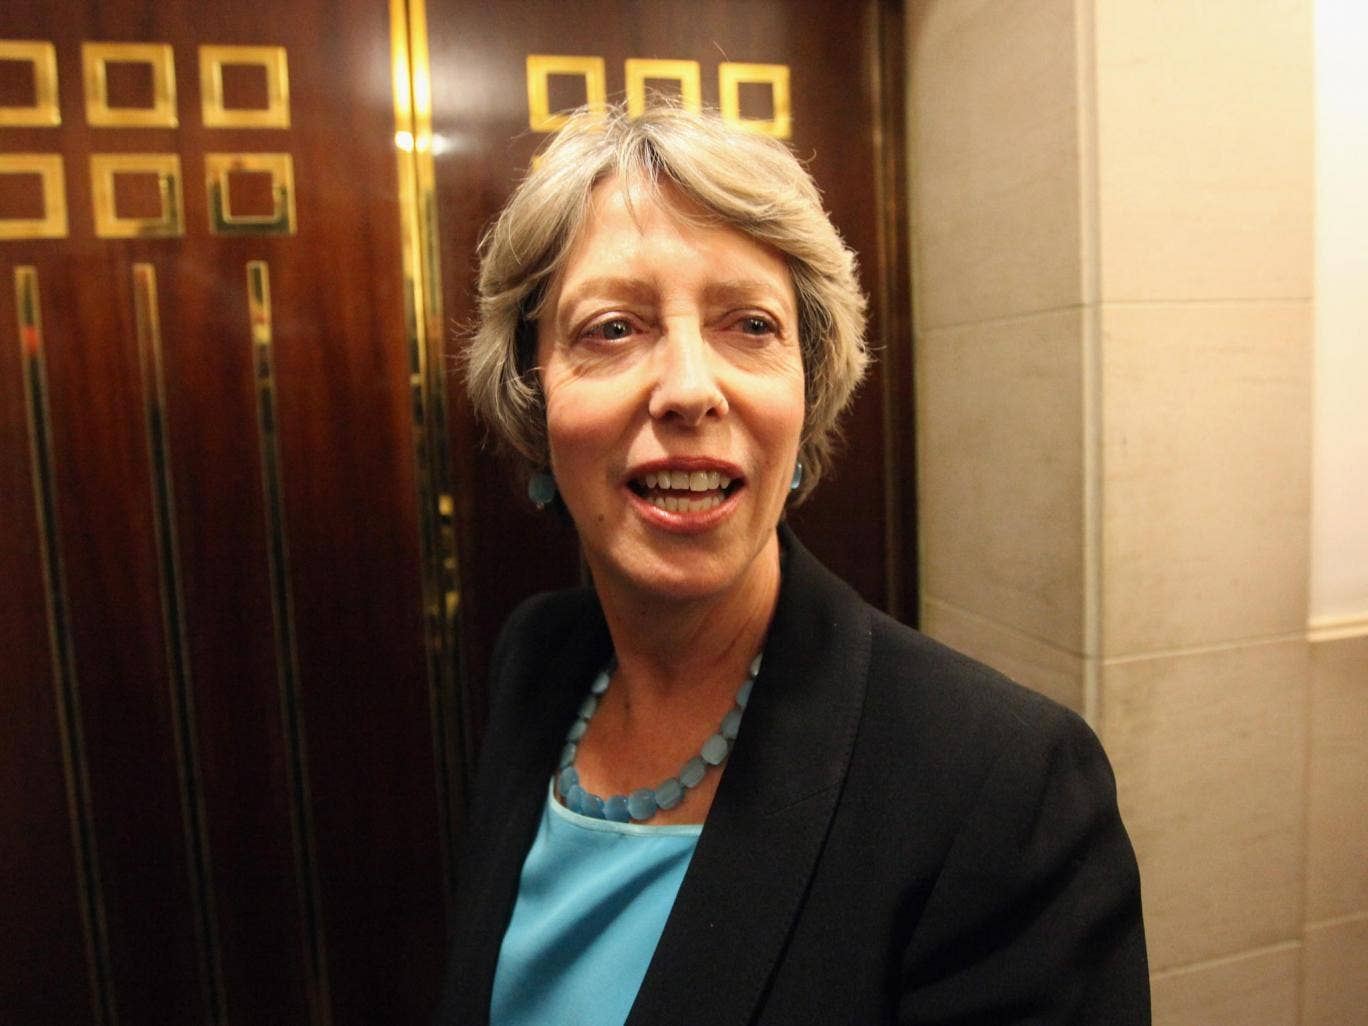 Patricia Hewitt said that as the NCCL's general secretary the 1970s she took responsibility for the mistake